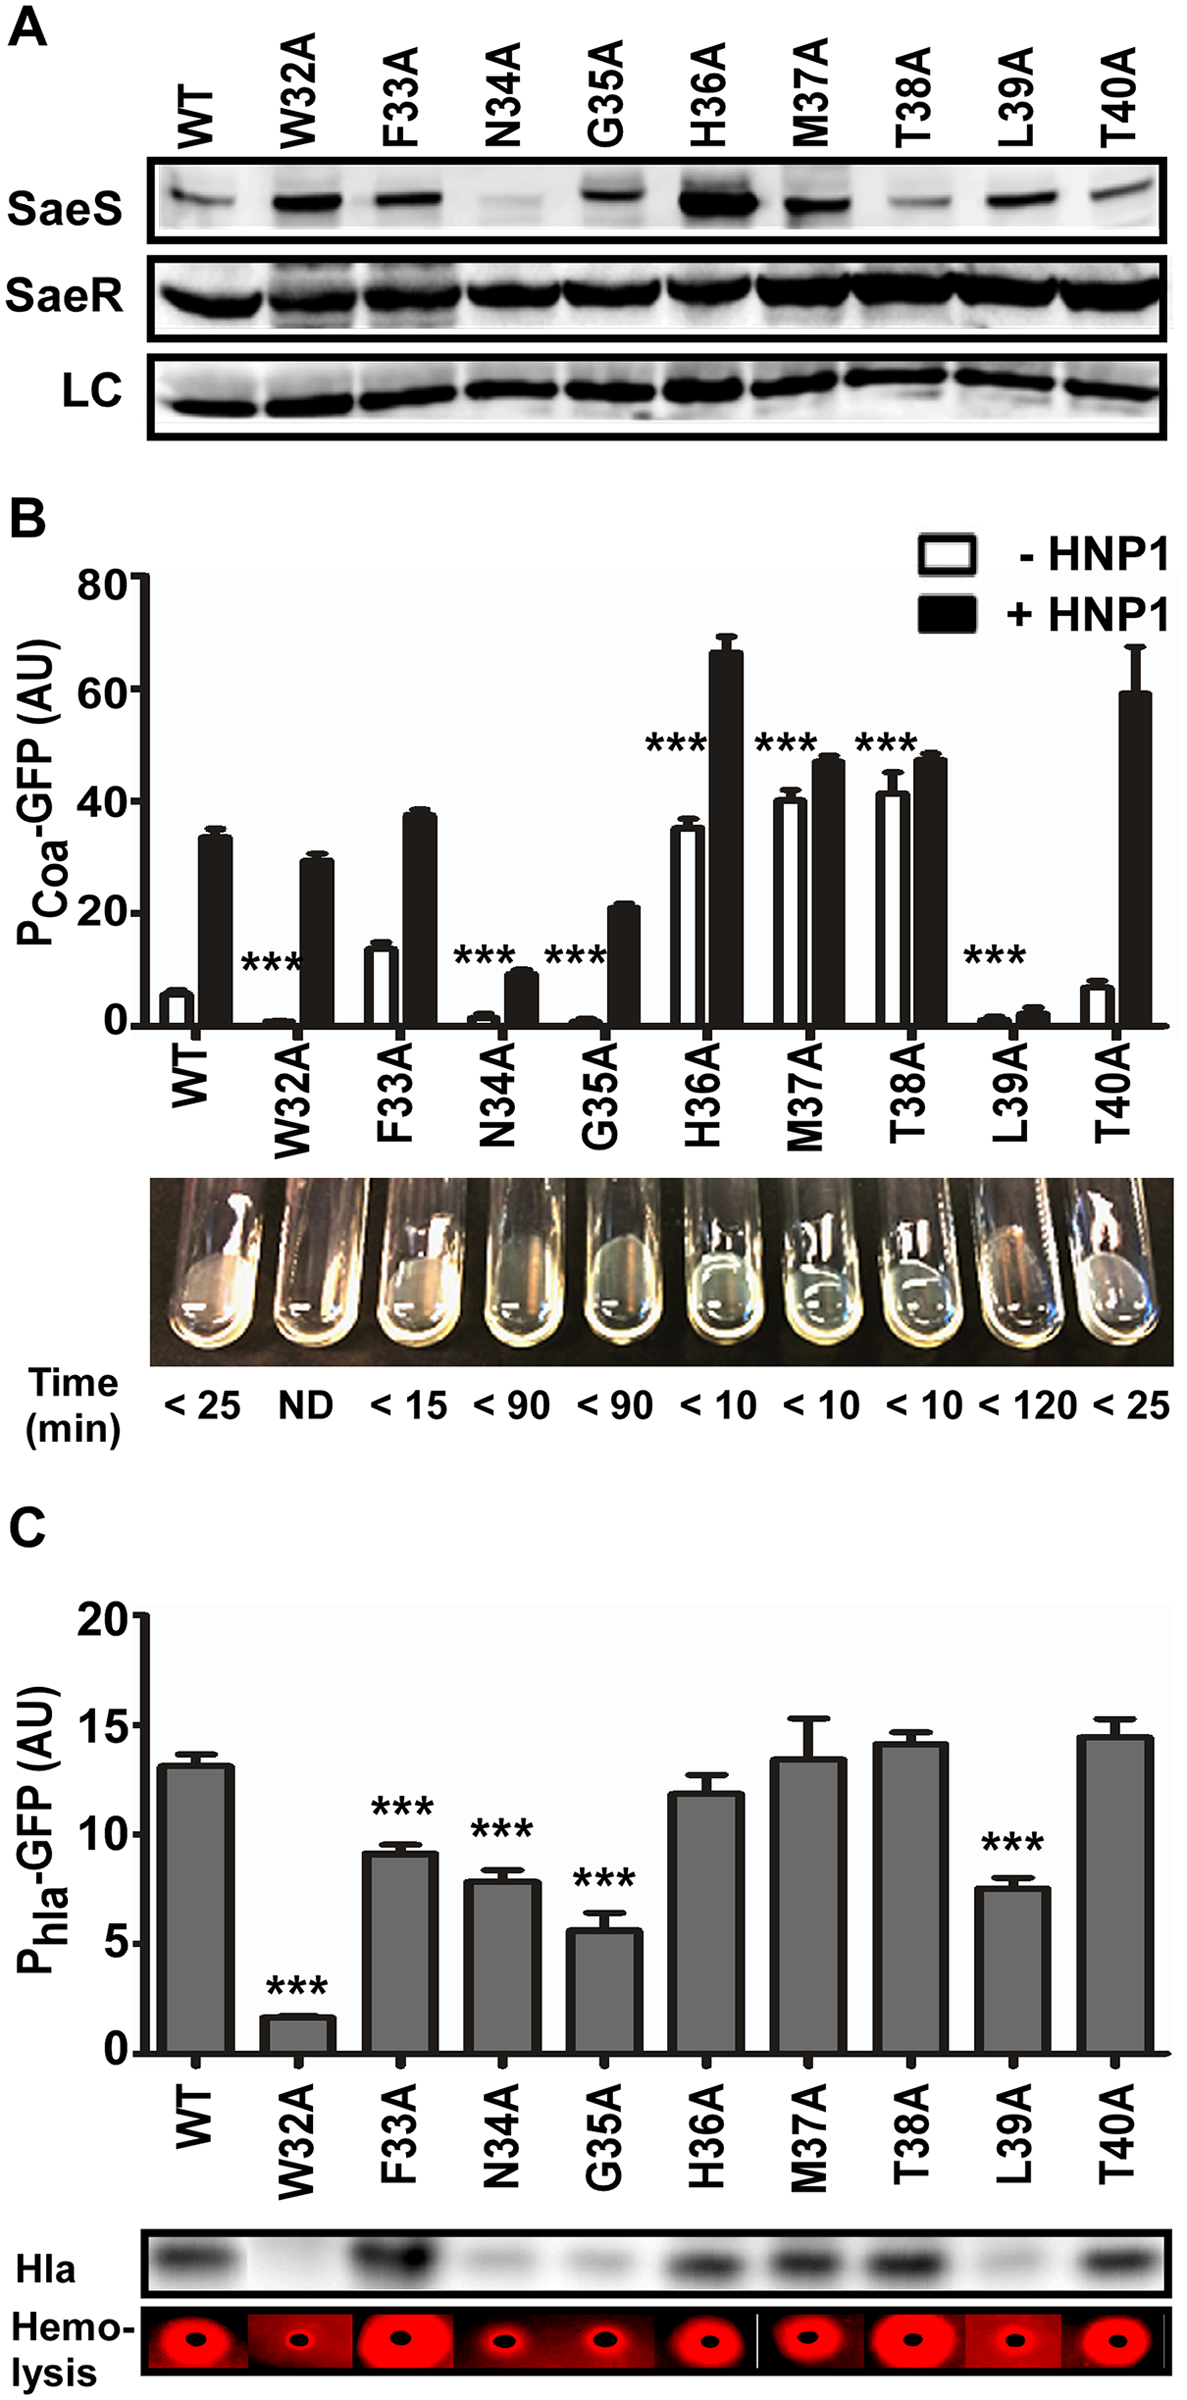 Alanine substitutions in the linker peptide alter the kinase activity of SaeS.